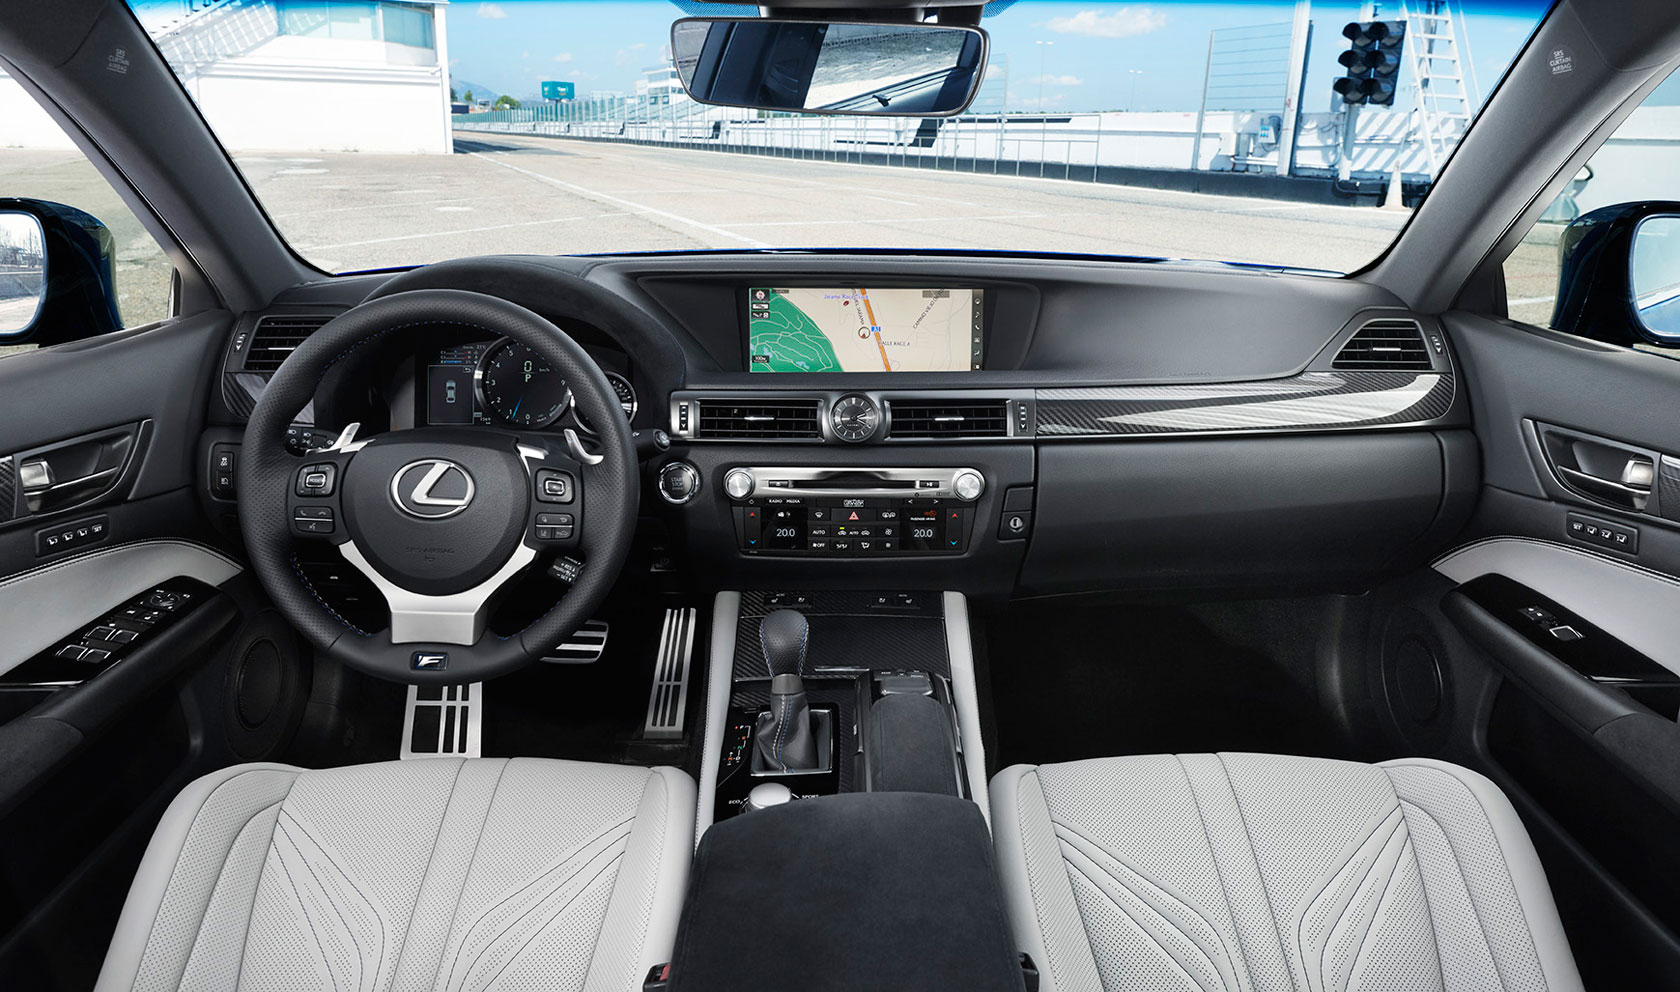 Lexus GS F Interior Shot